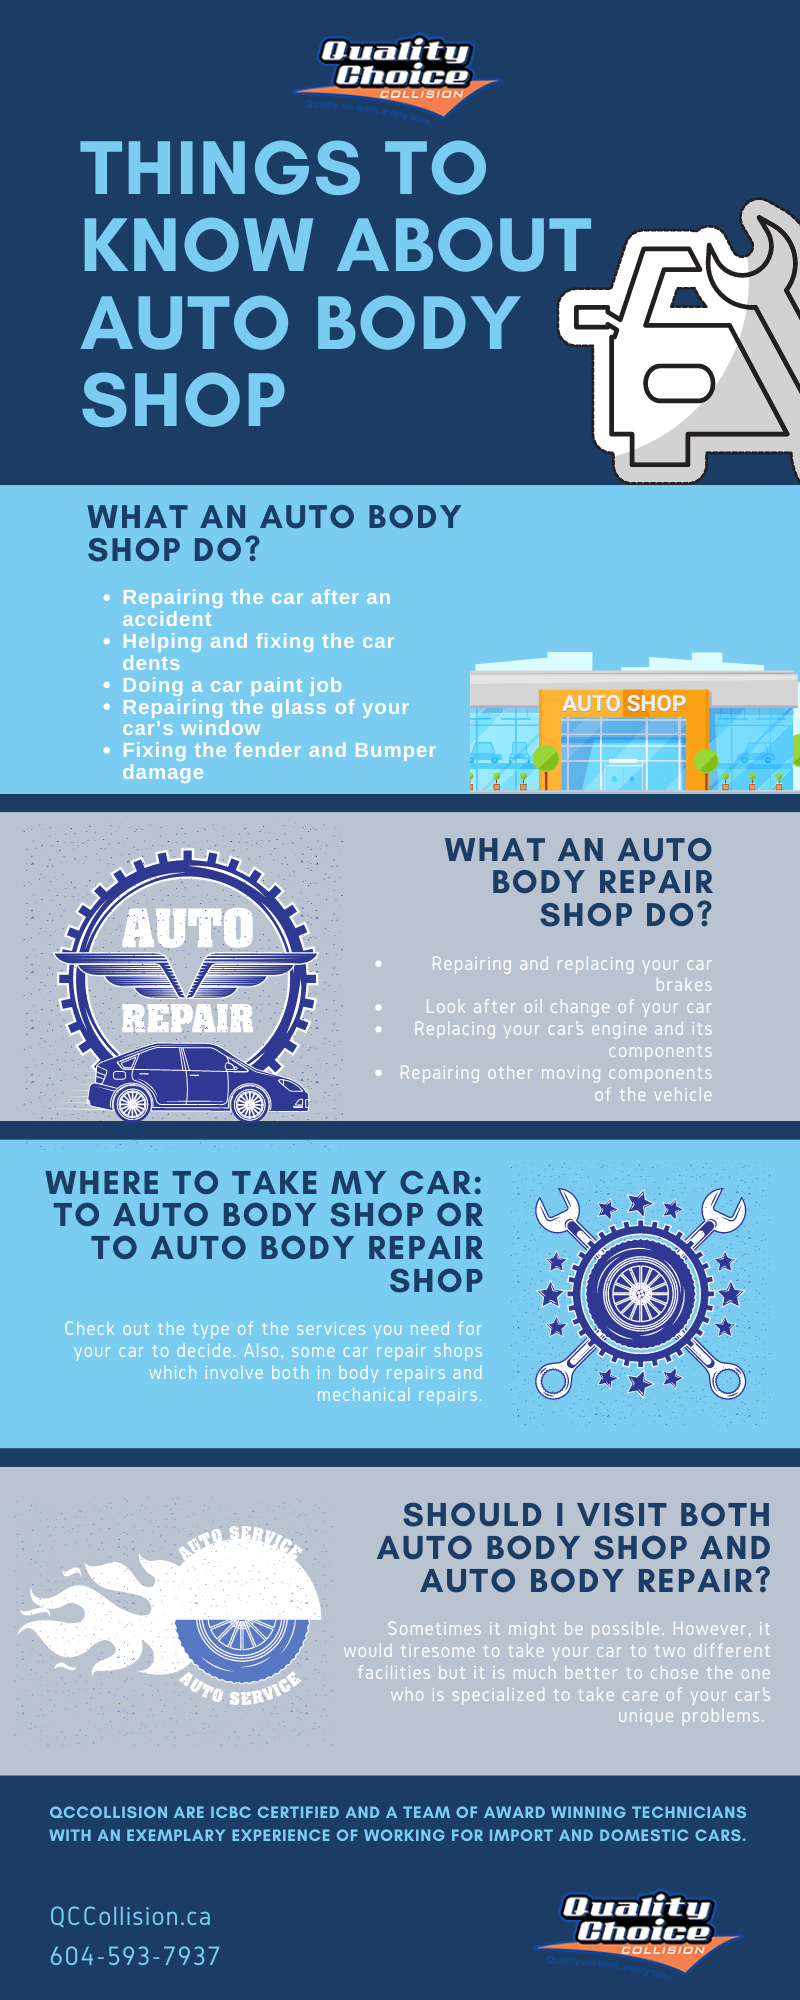 Things to know about Auto Body Shop